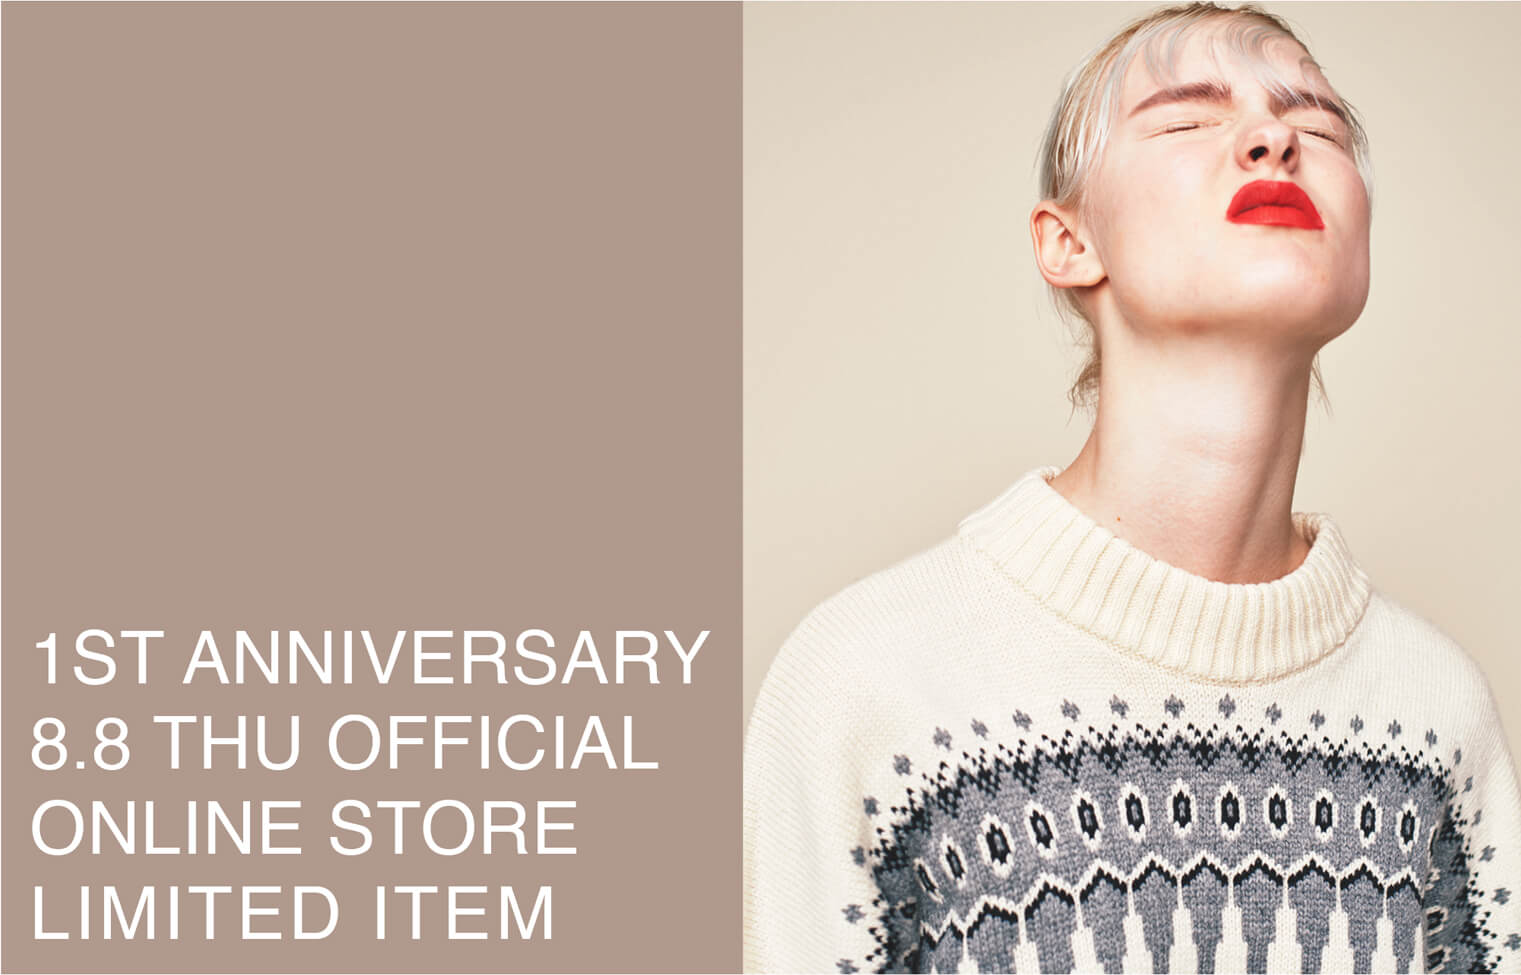 OFFICIAL ONLINE STORE 1ST ANNIVERSARY LIMITED ITEM